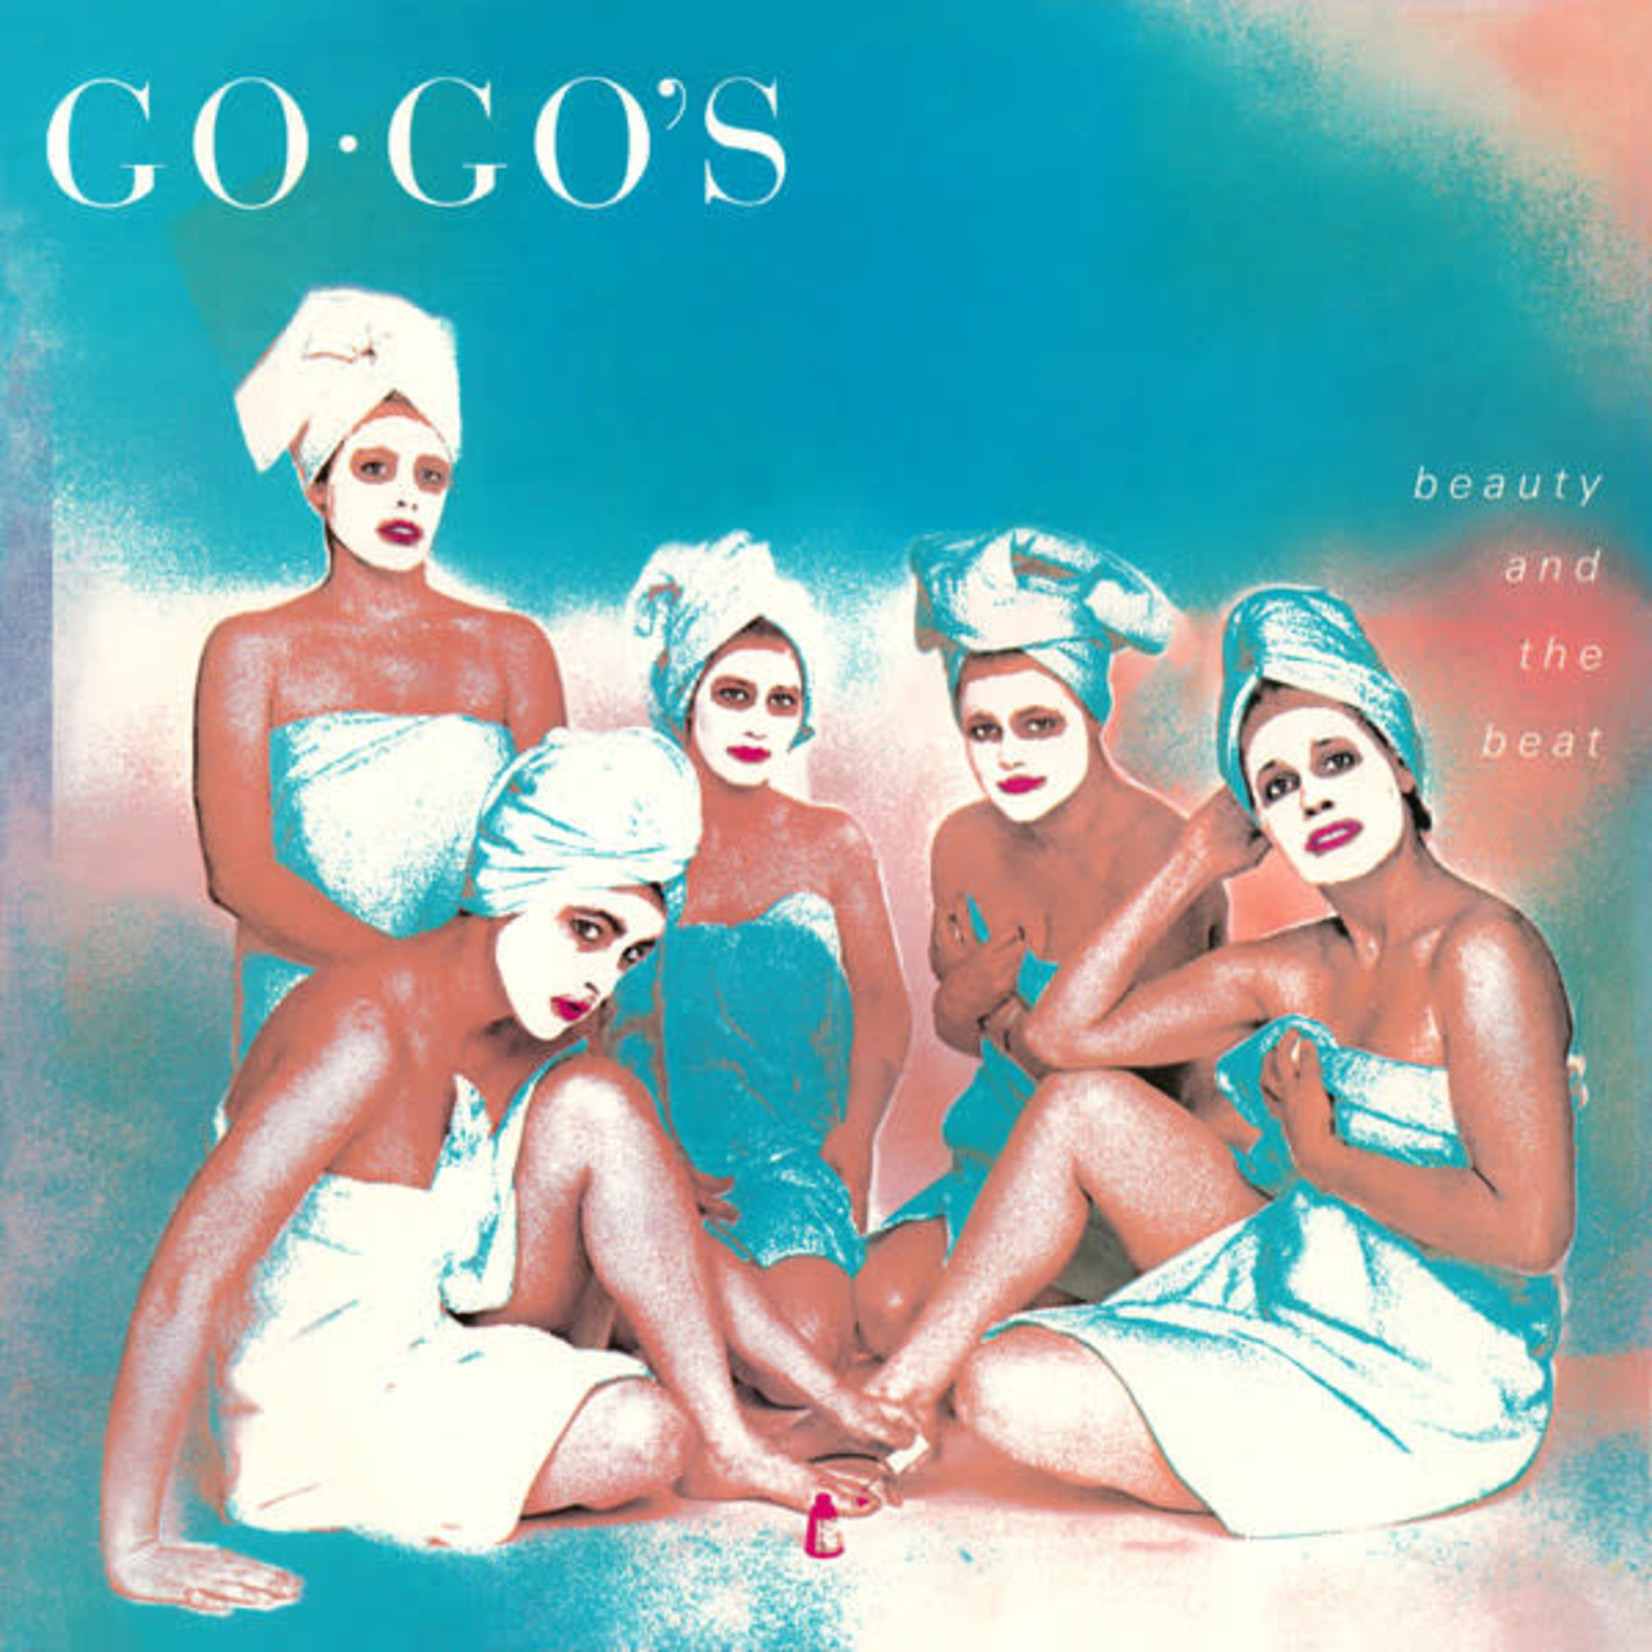 [Vintage] Go-Go's: Beauty and the Beat